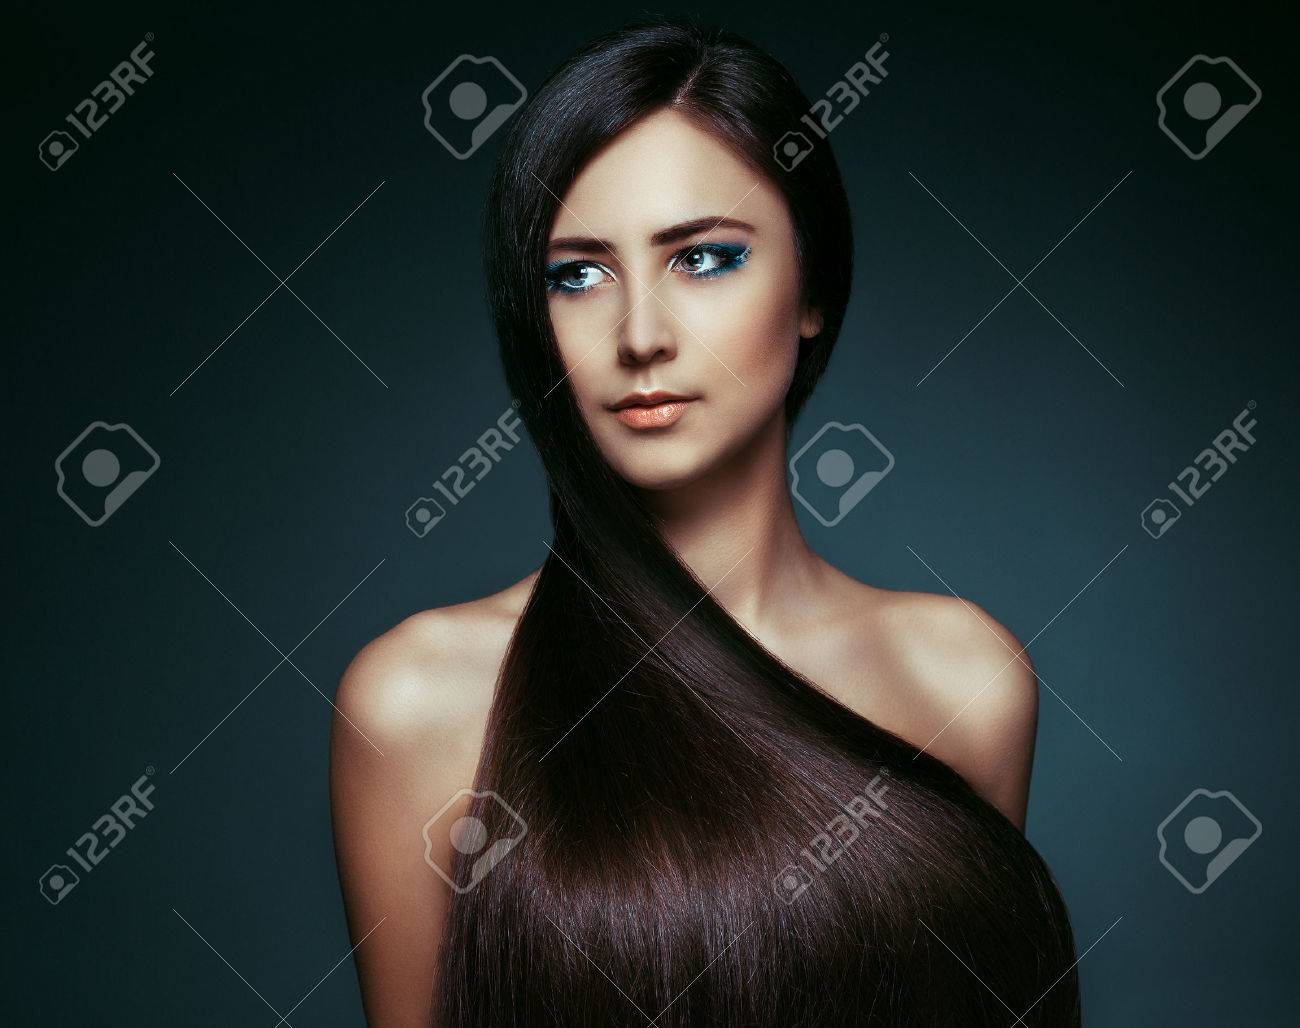 Beautiful Brunette Girl with Healthy Long Hair - 41055674